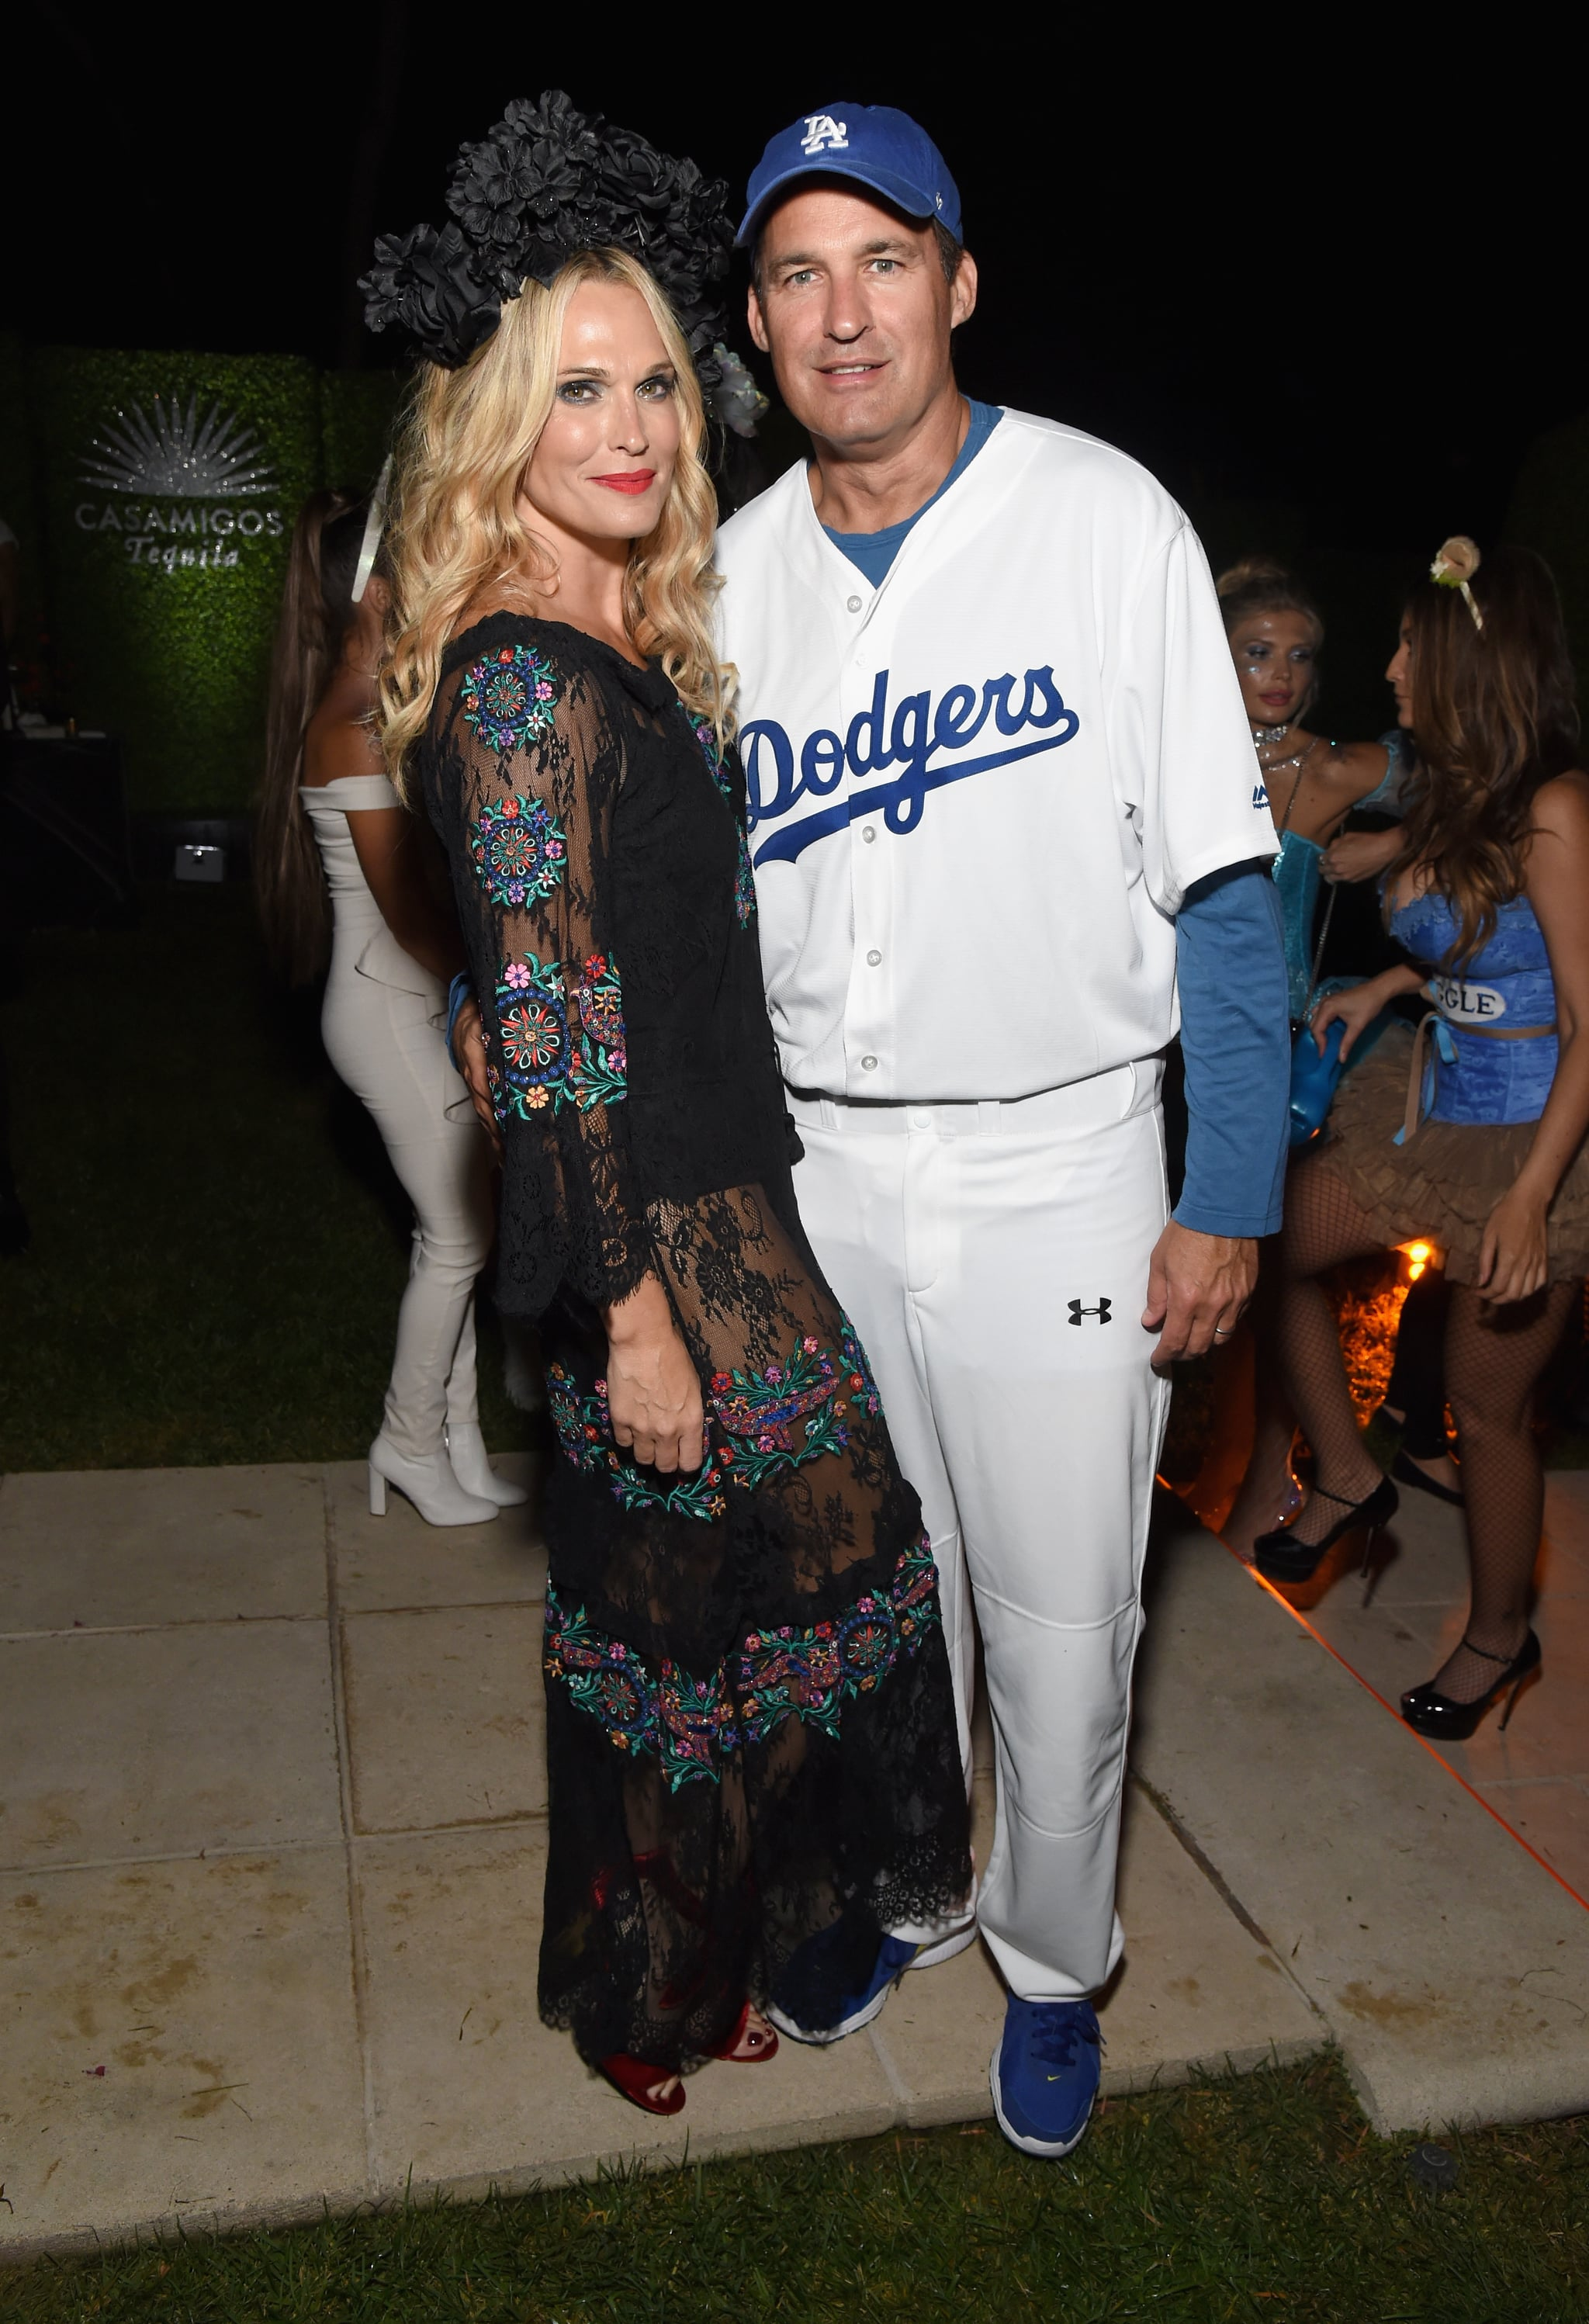 Molly Simms and Scott Stuber as a Dodgers Player | All the